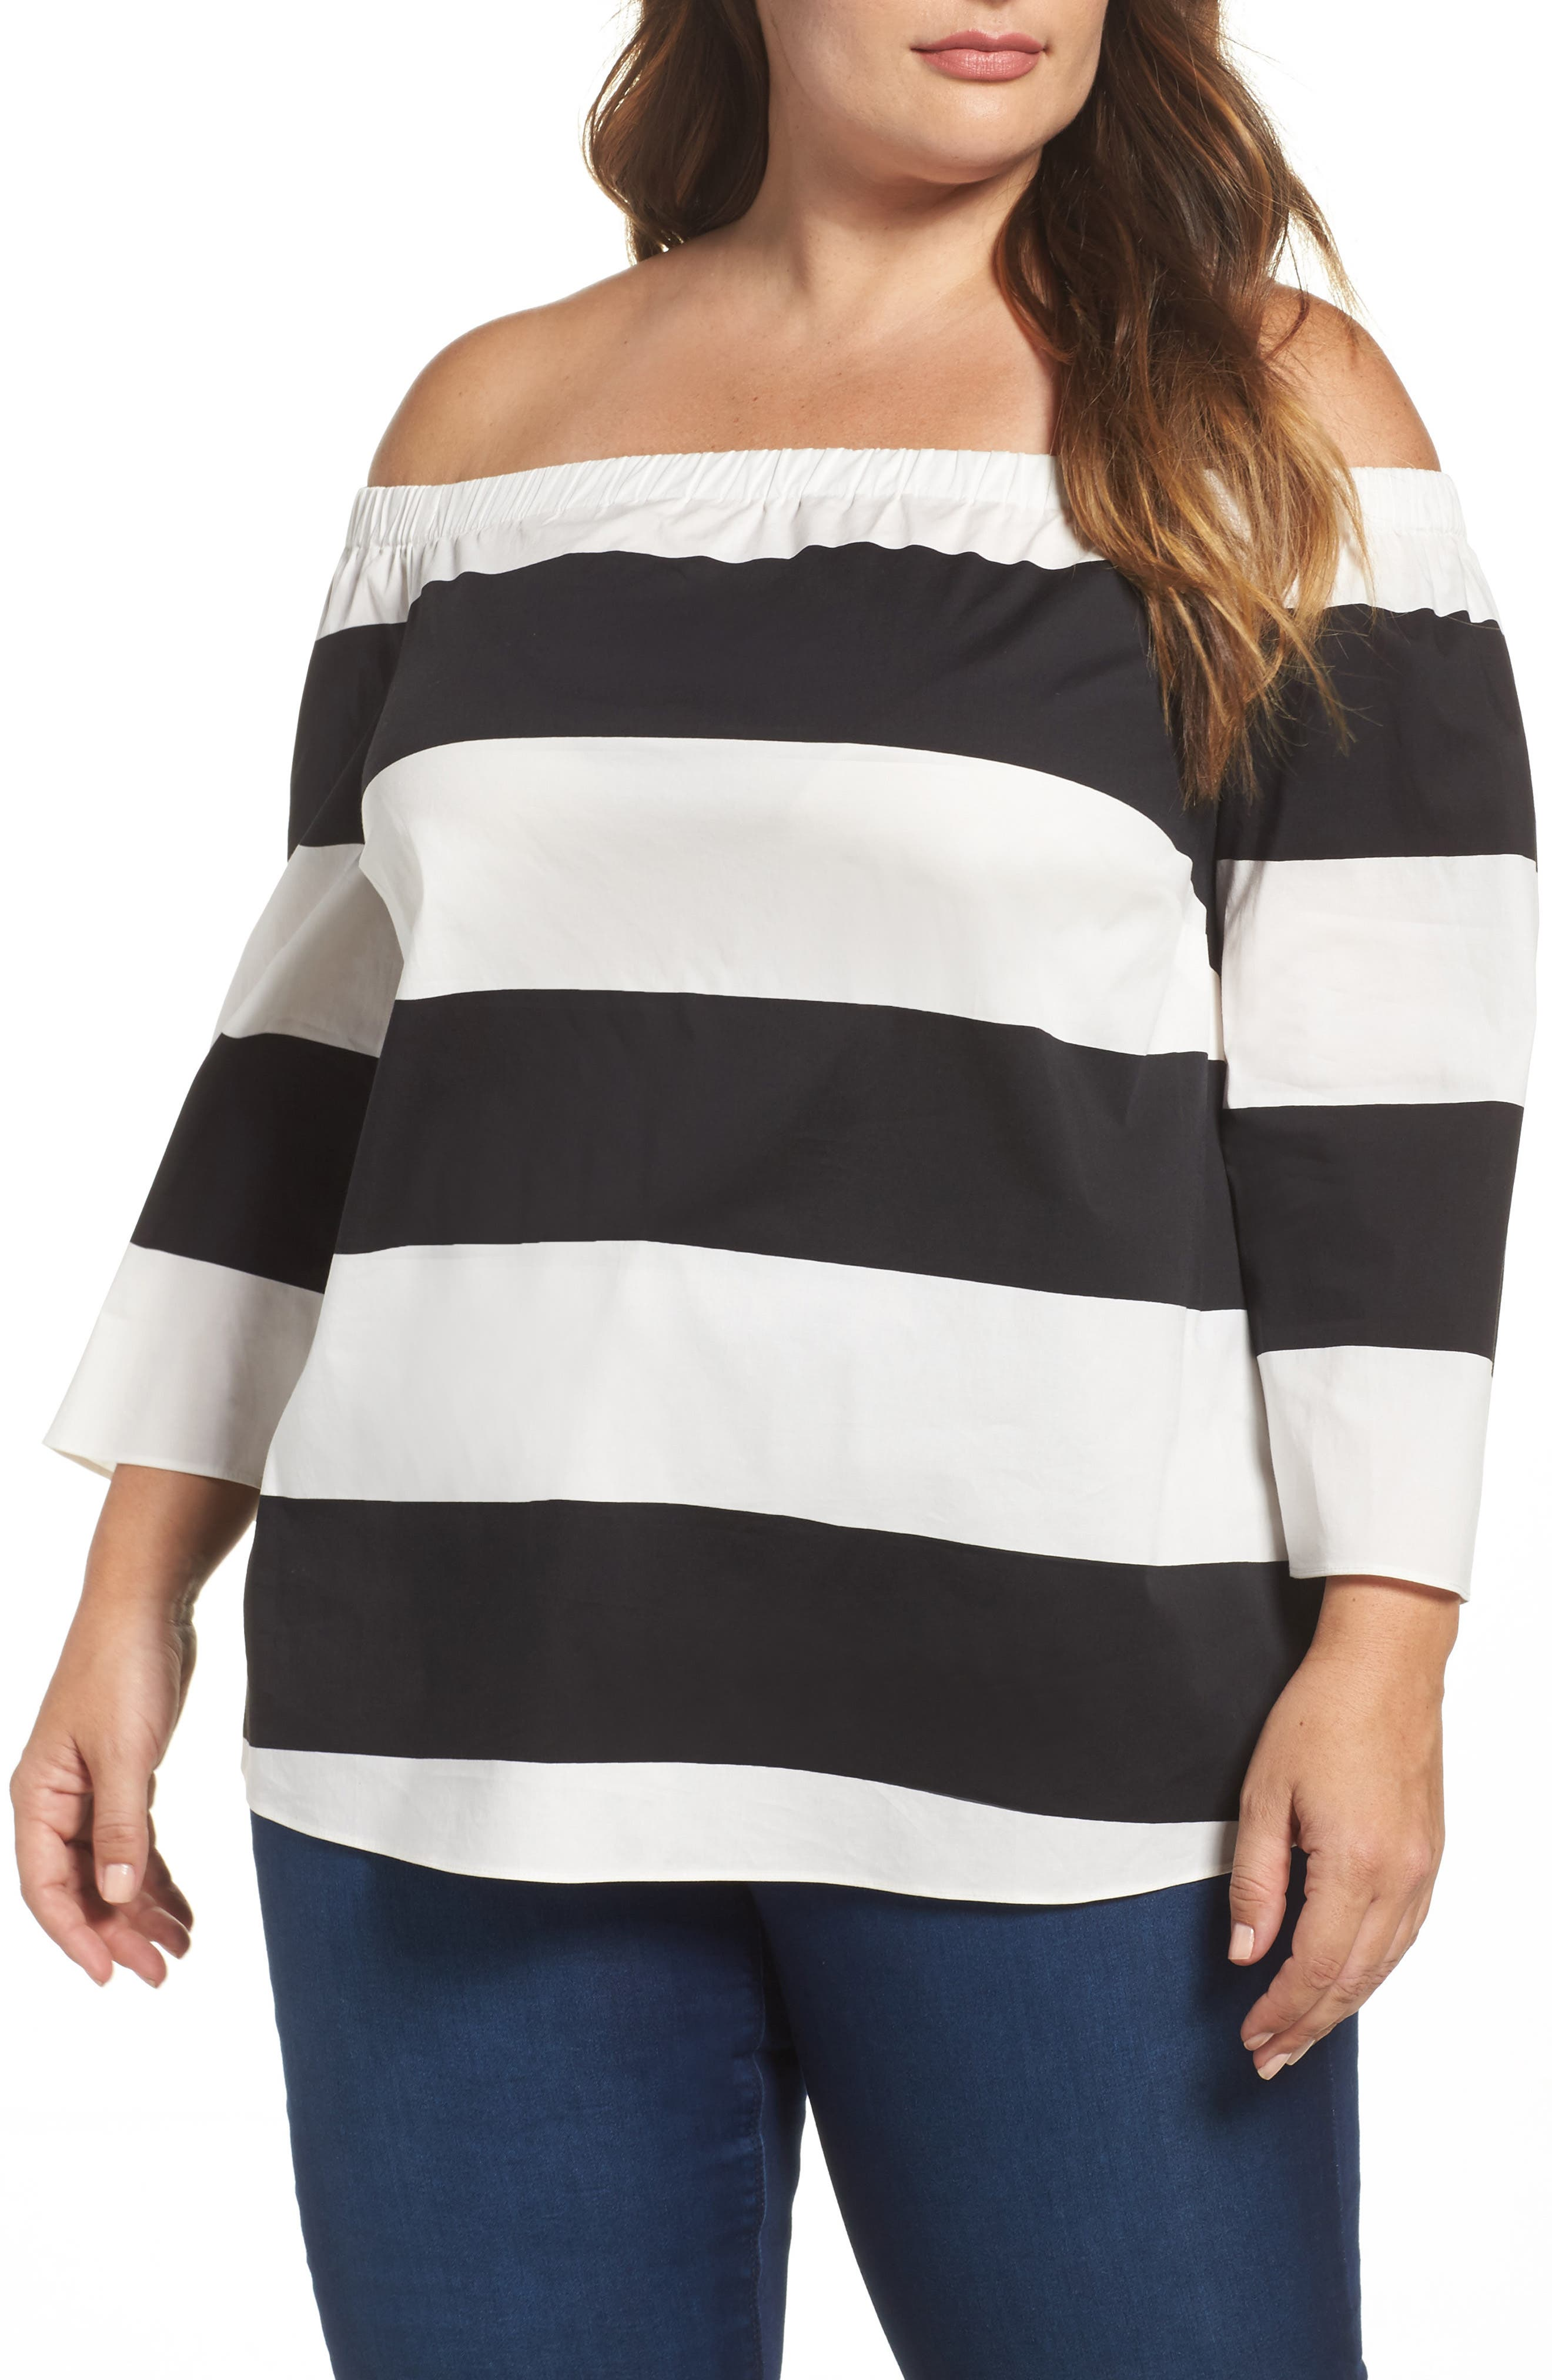 Vince Camuto Camden Stripe Off the Shoulder Top (Plus Size)